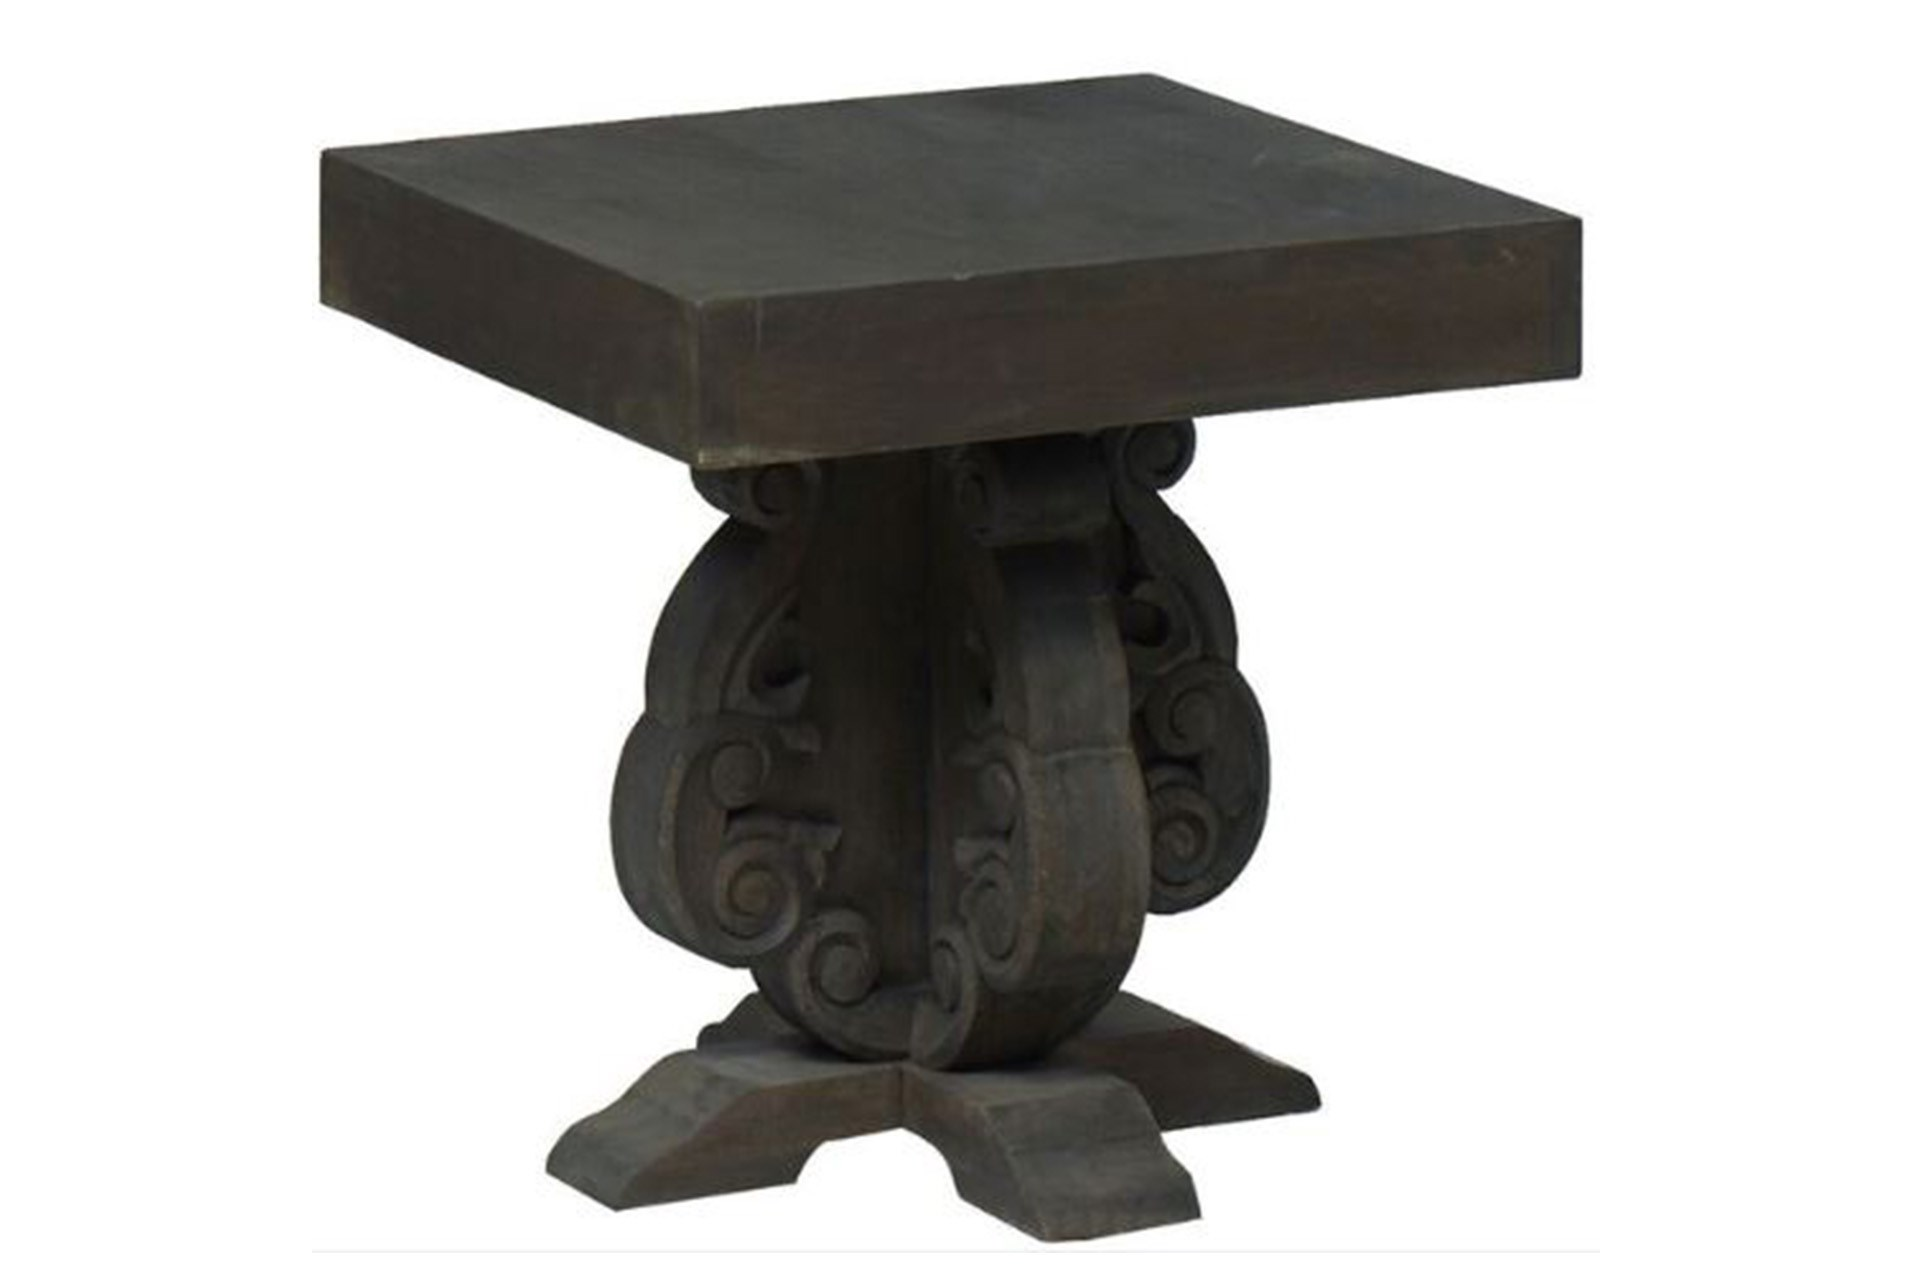 masonry accent table living spaces grey wood large view gray trestle dining inch round tablecloth white marble end small red lamp party cloth corner space bedroom furniture target